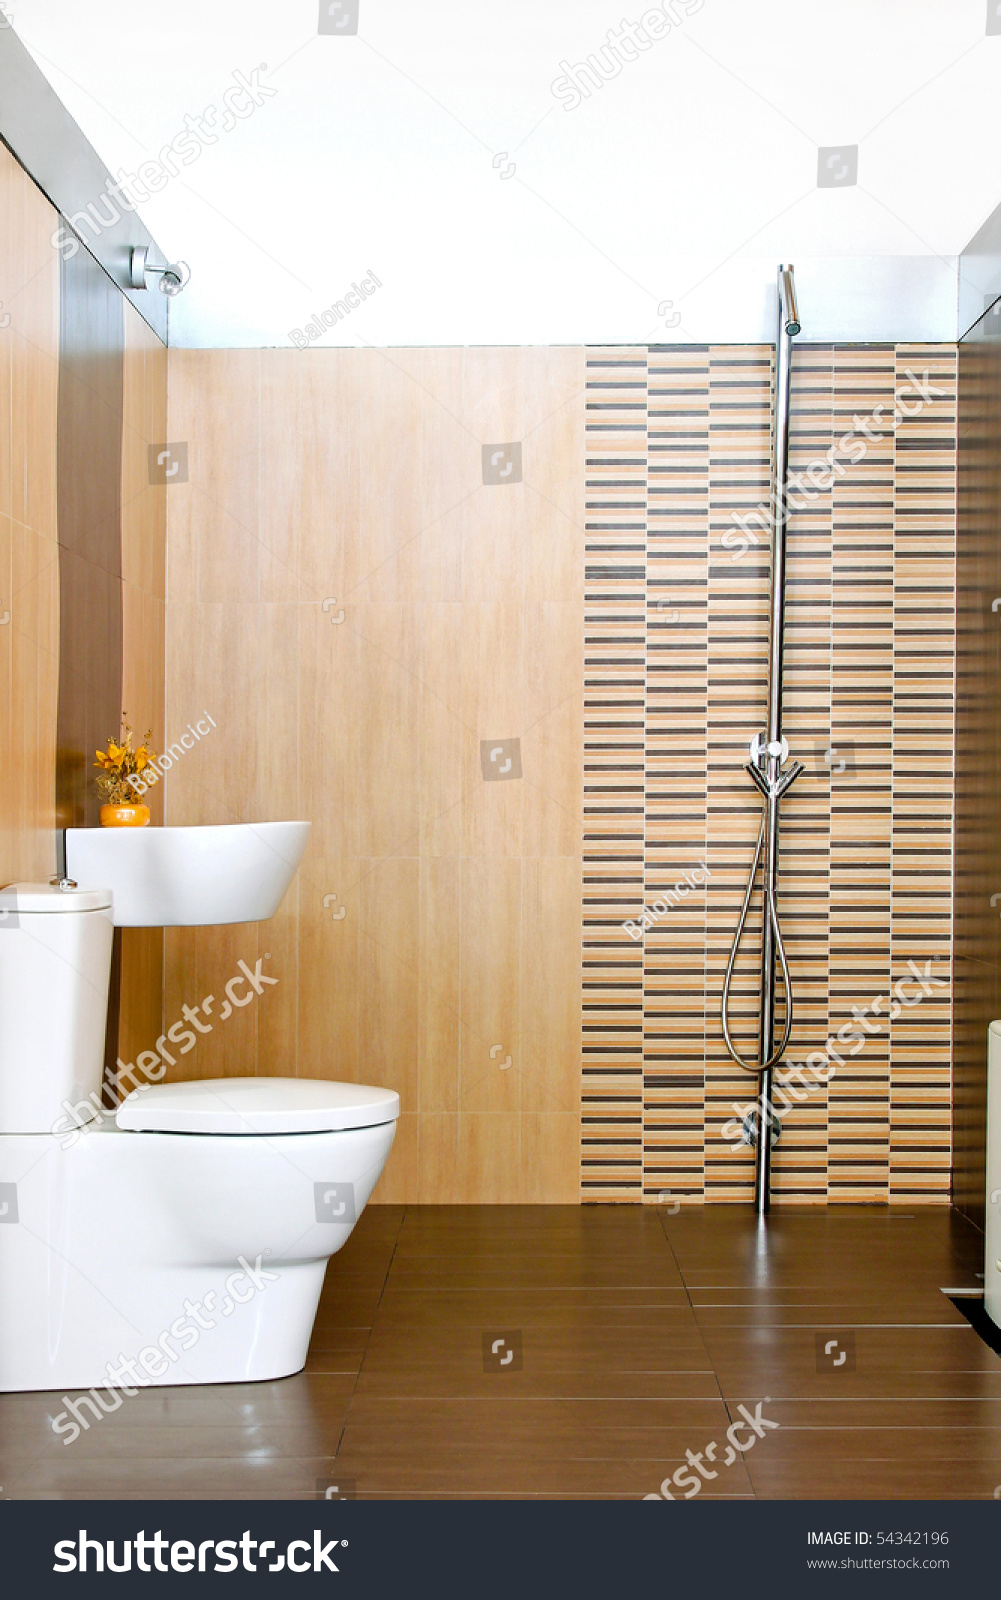 Small Bathroom Open Shower Without Cabin Stock Photo Edit Now